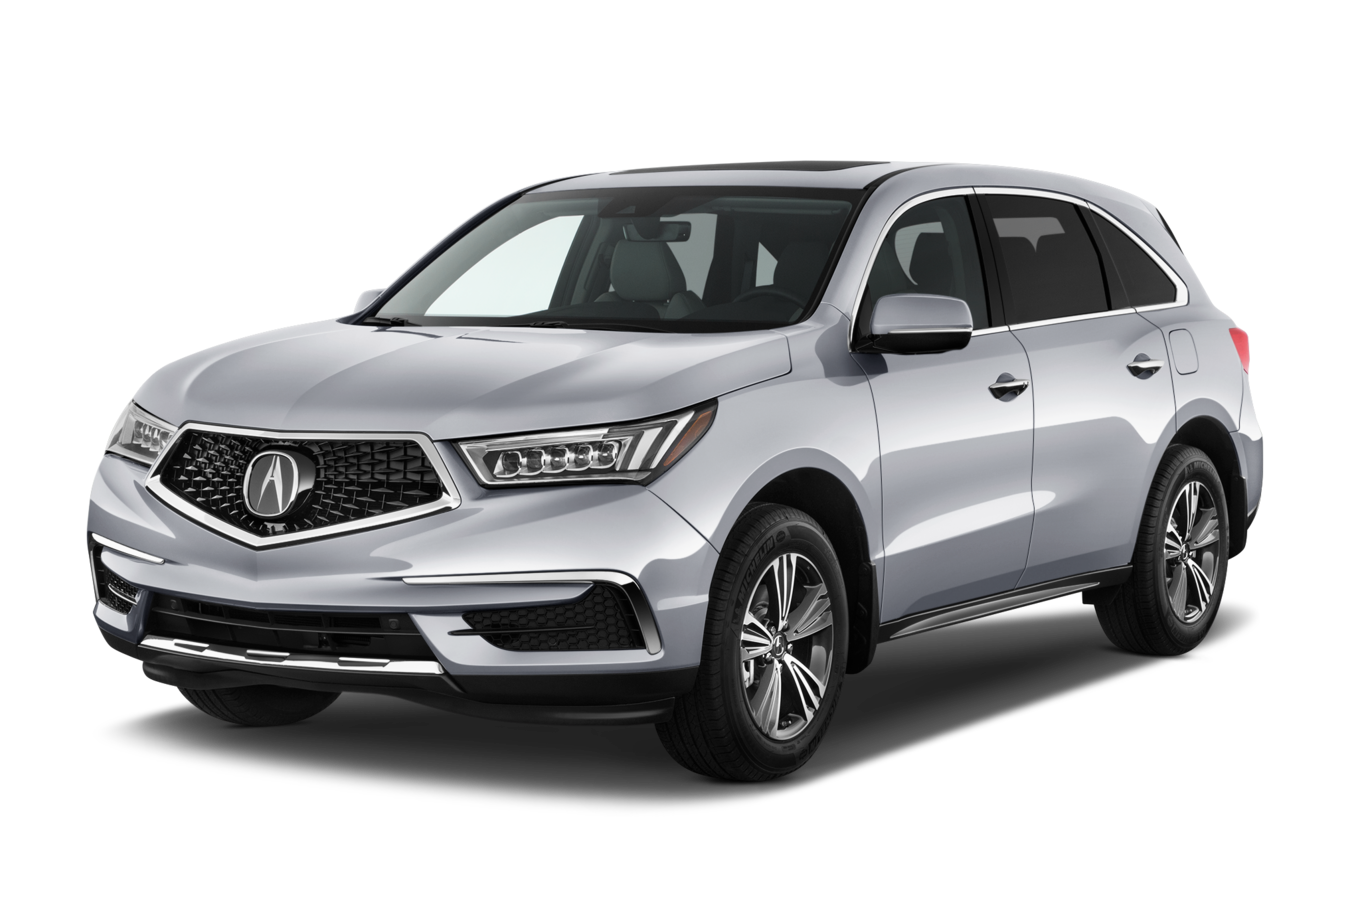 2017 Acura Mdx Reviews And Rating Motor Trend Luxury Hybrid Cars Acura Mdx Acura Mdx Hybrid